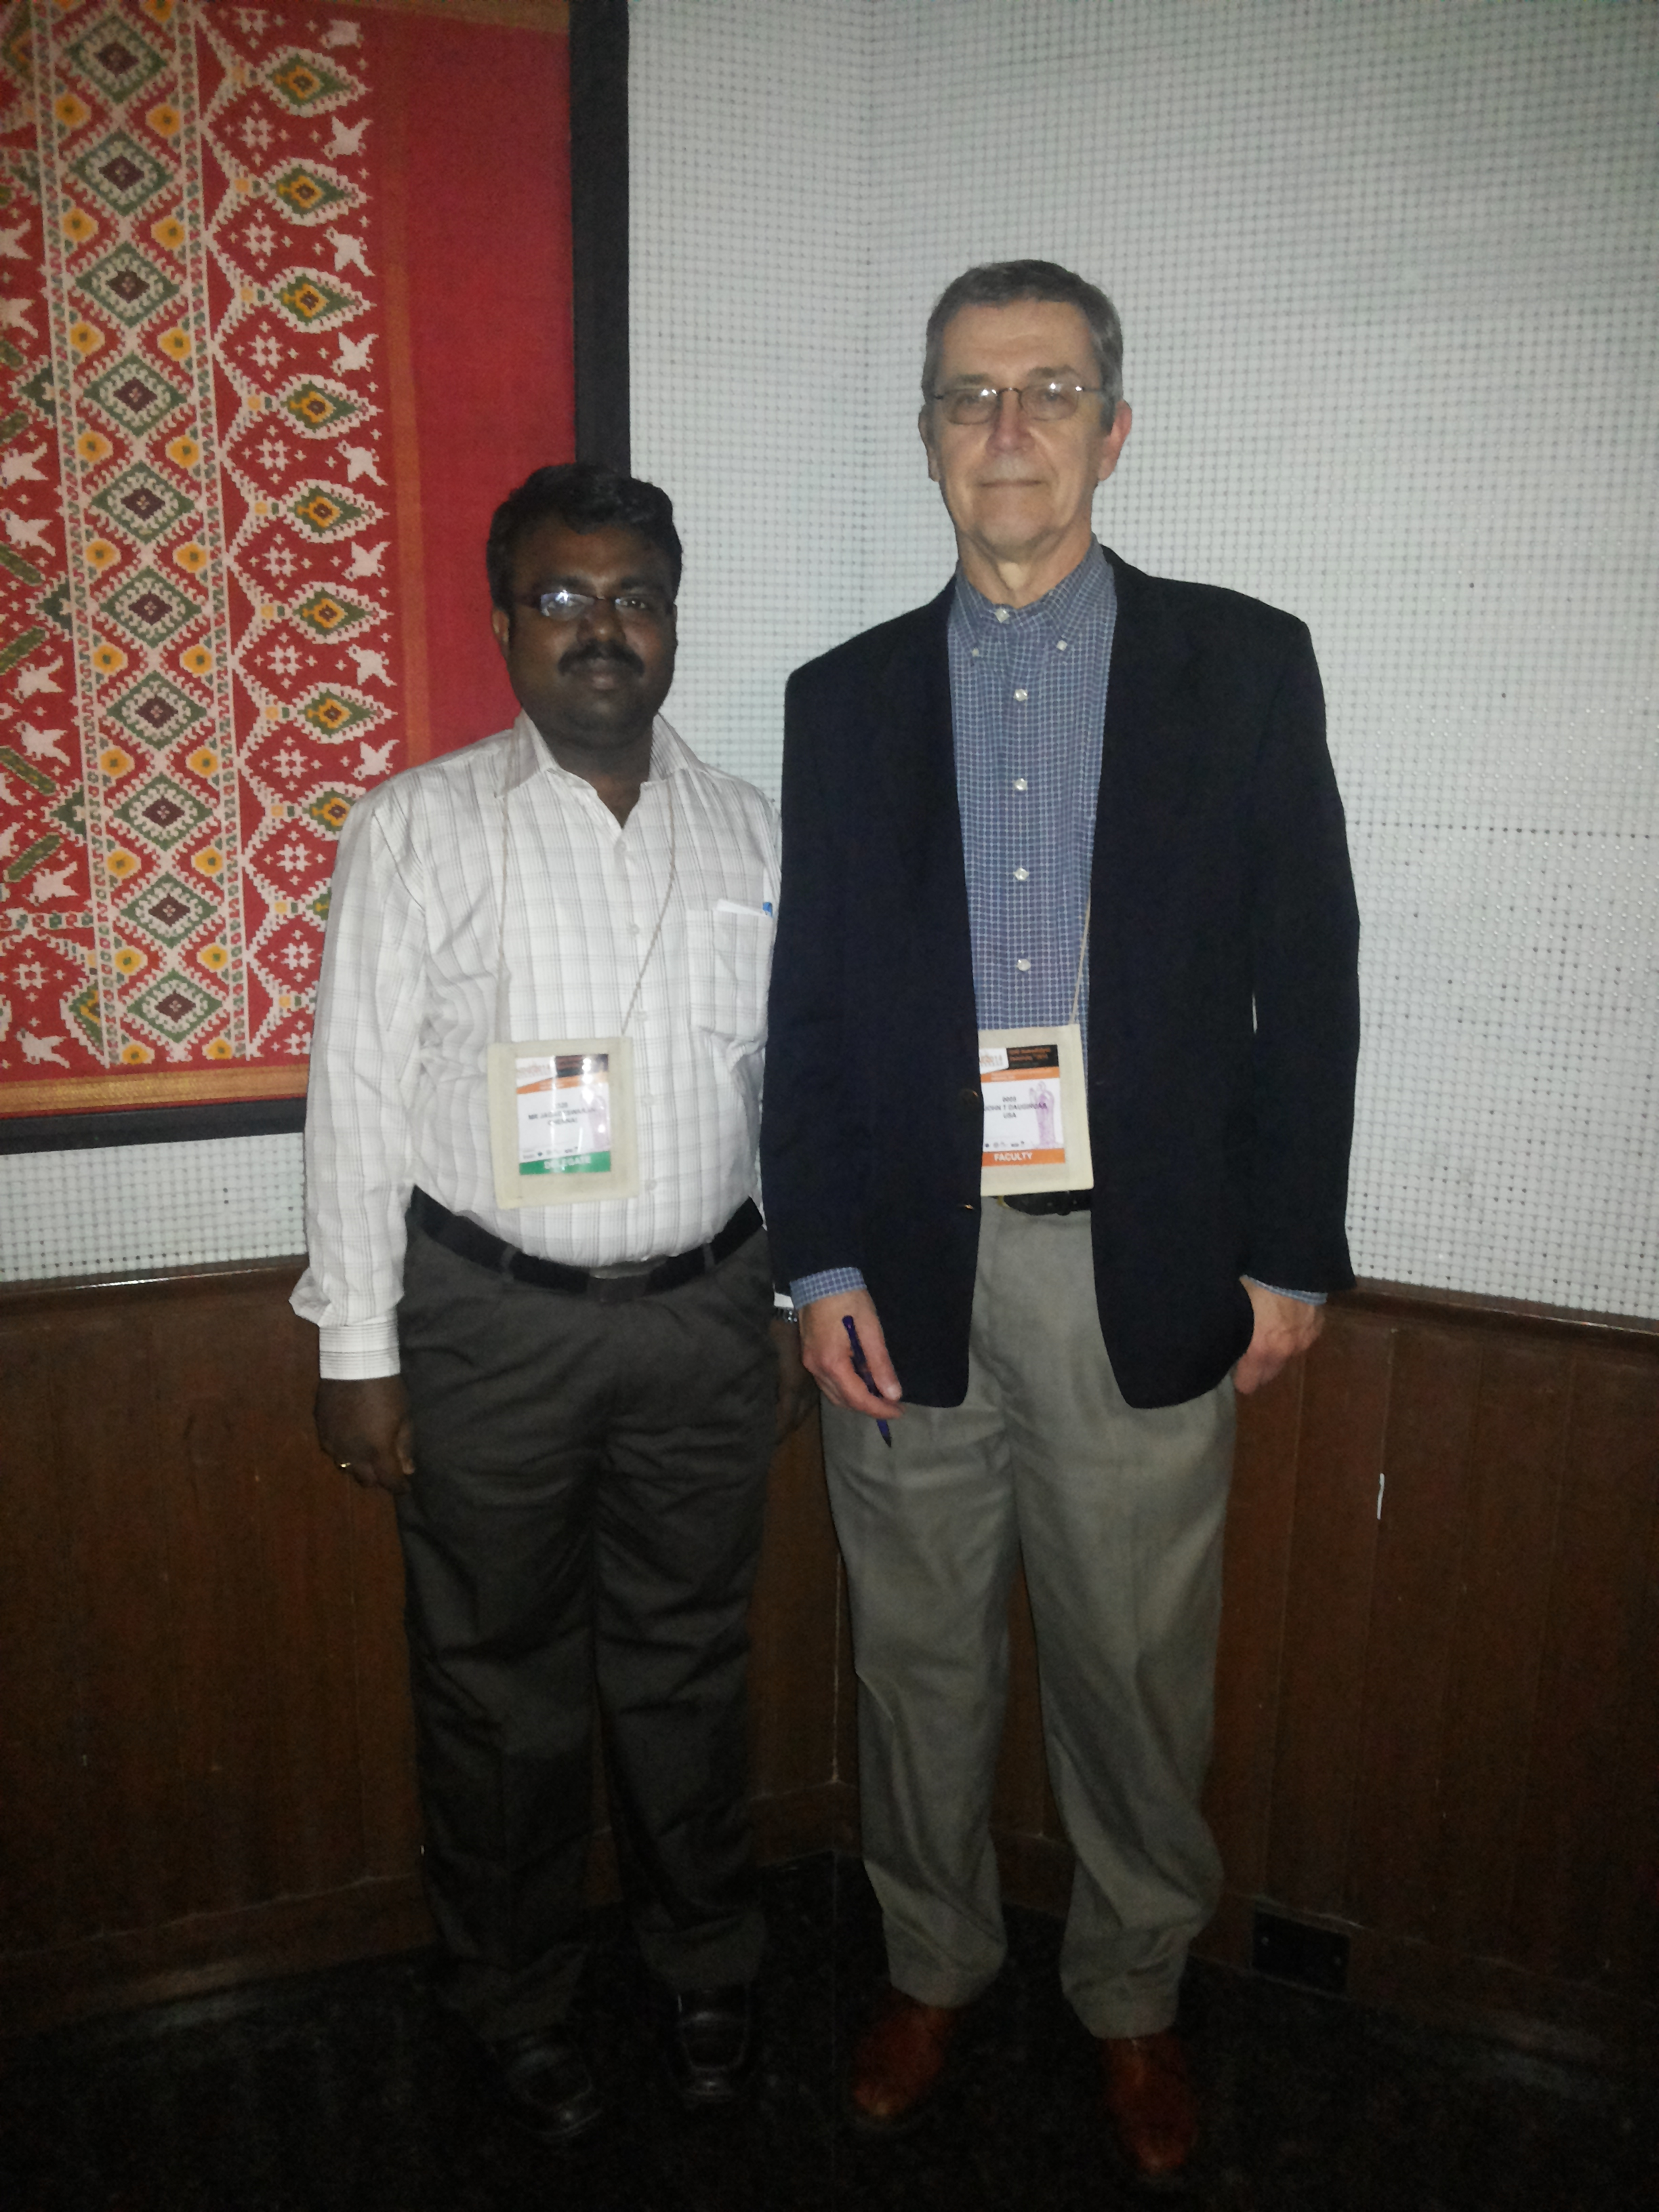 Photo taken with Prof Dr John T Daugirdas, Author of famous Handbook of Dialysis